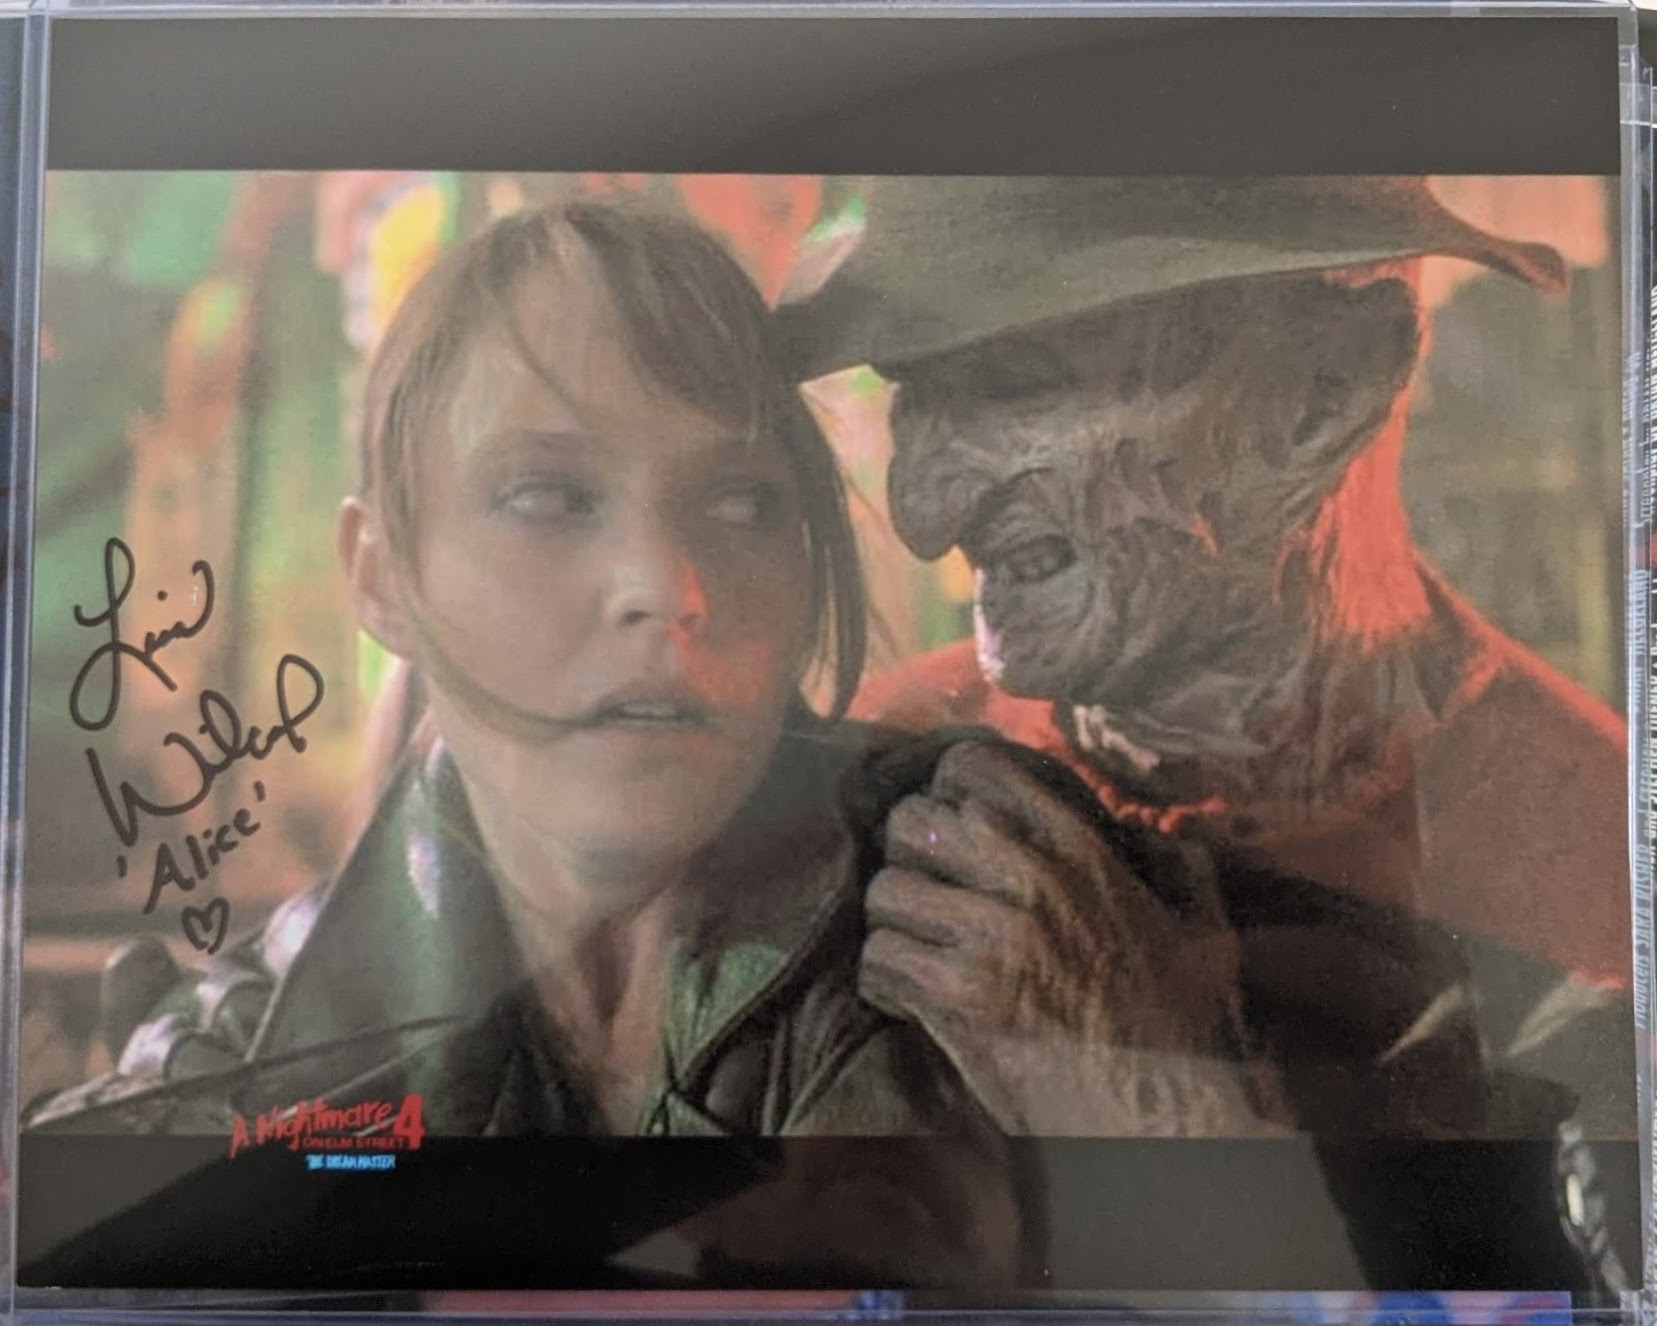 Nightmare on Elm Street 4 Photo Autographed by Lisa Wilcox